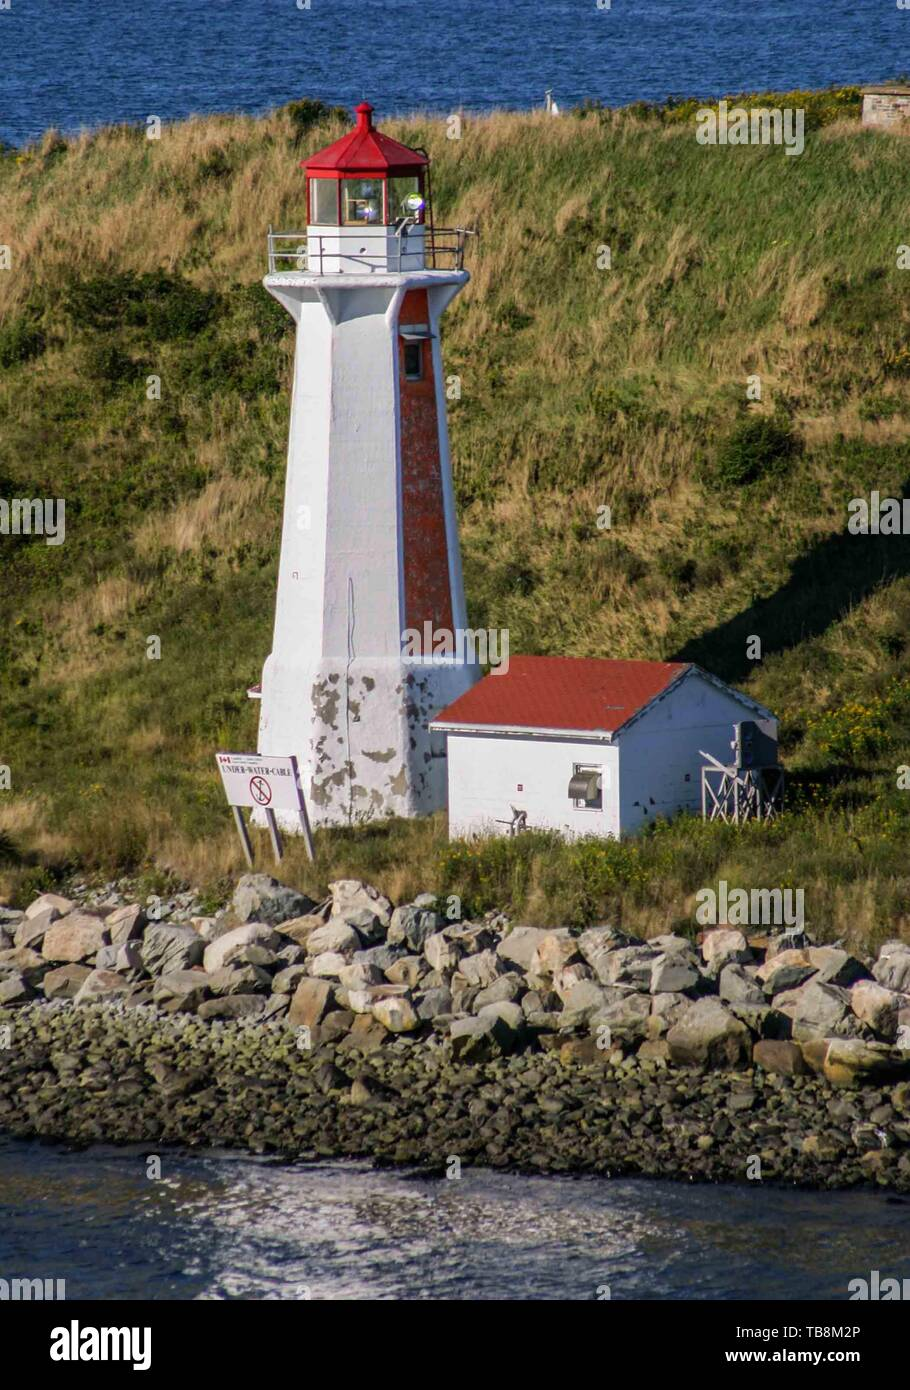 Halifax, Nova Scotia, Canada. 5th Sep, 2005. Georges Island Lighthouse, and the light-keeper's house, are prominent in the harbor of Halifax, Nova Scotia. Now automated, the lighthouse is operated by the Canadian Coast Guard. Credit: Arnold Drapkin/ZUMA Wire/Alamy Live News - Stock Image